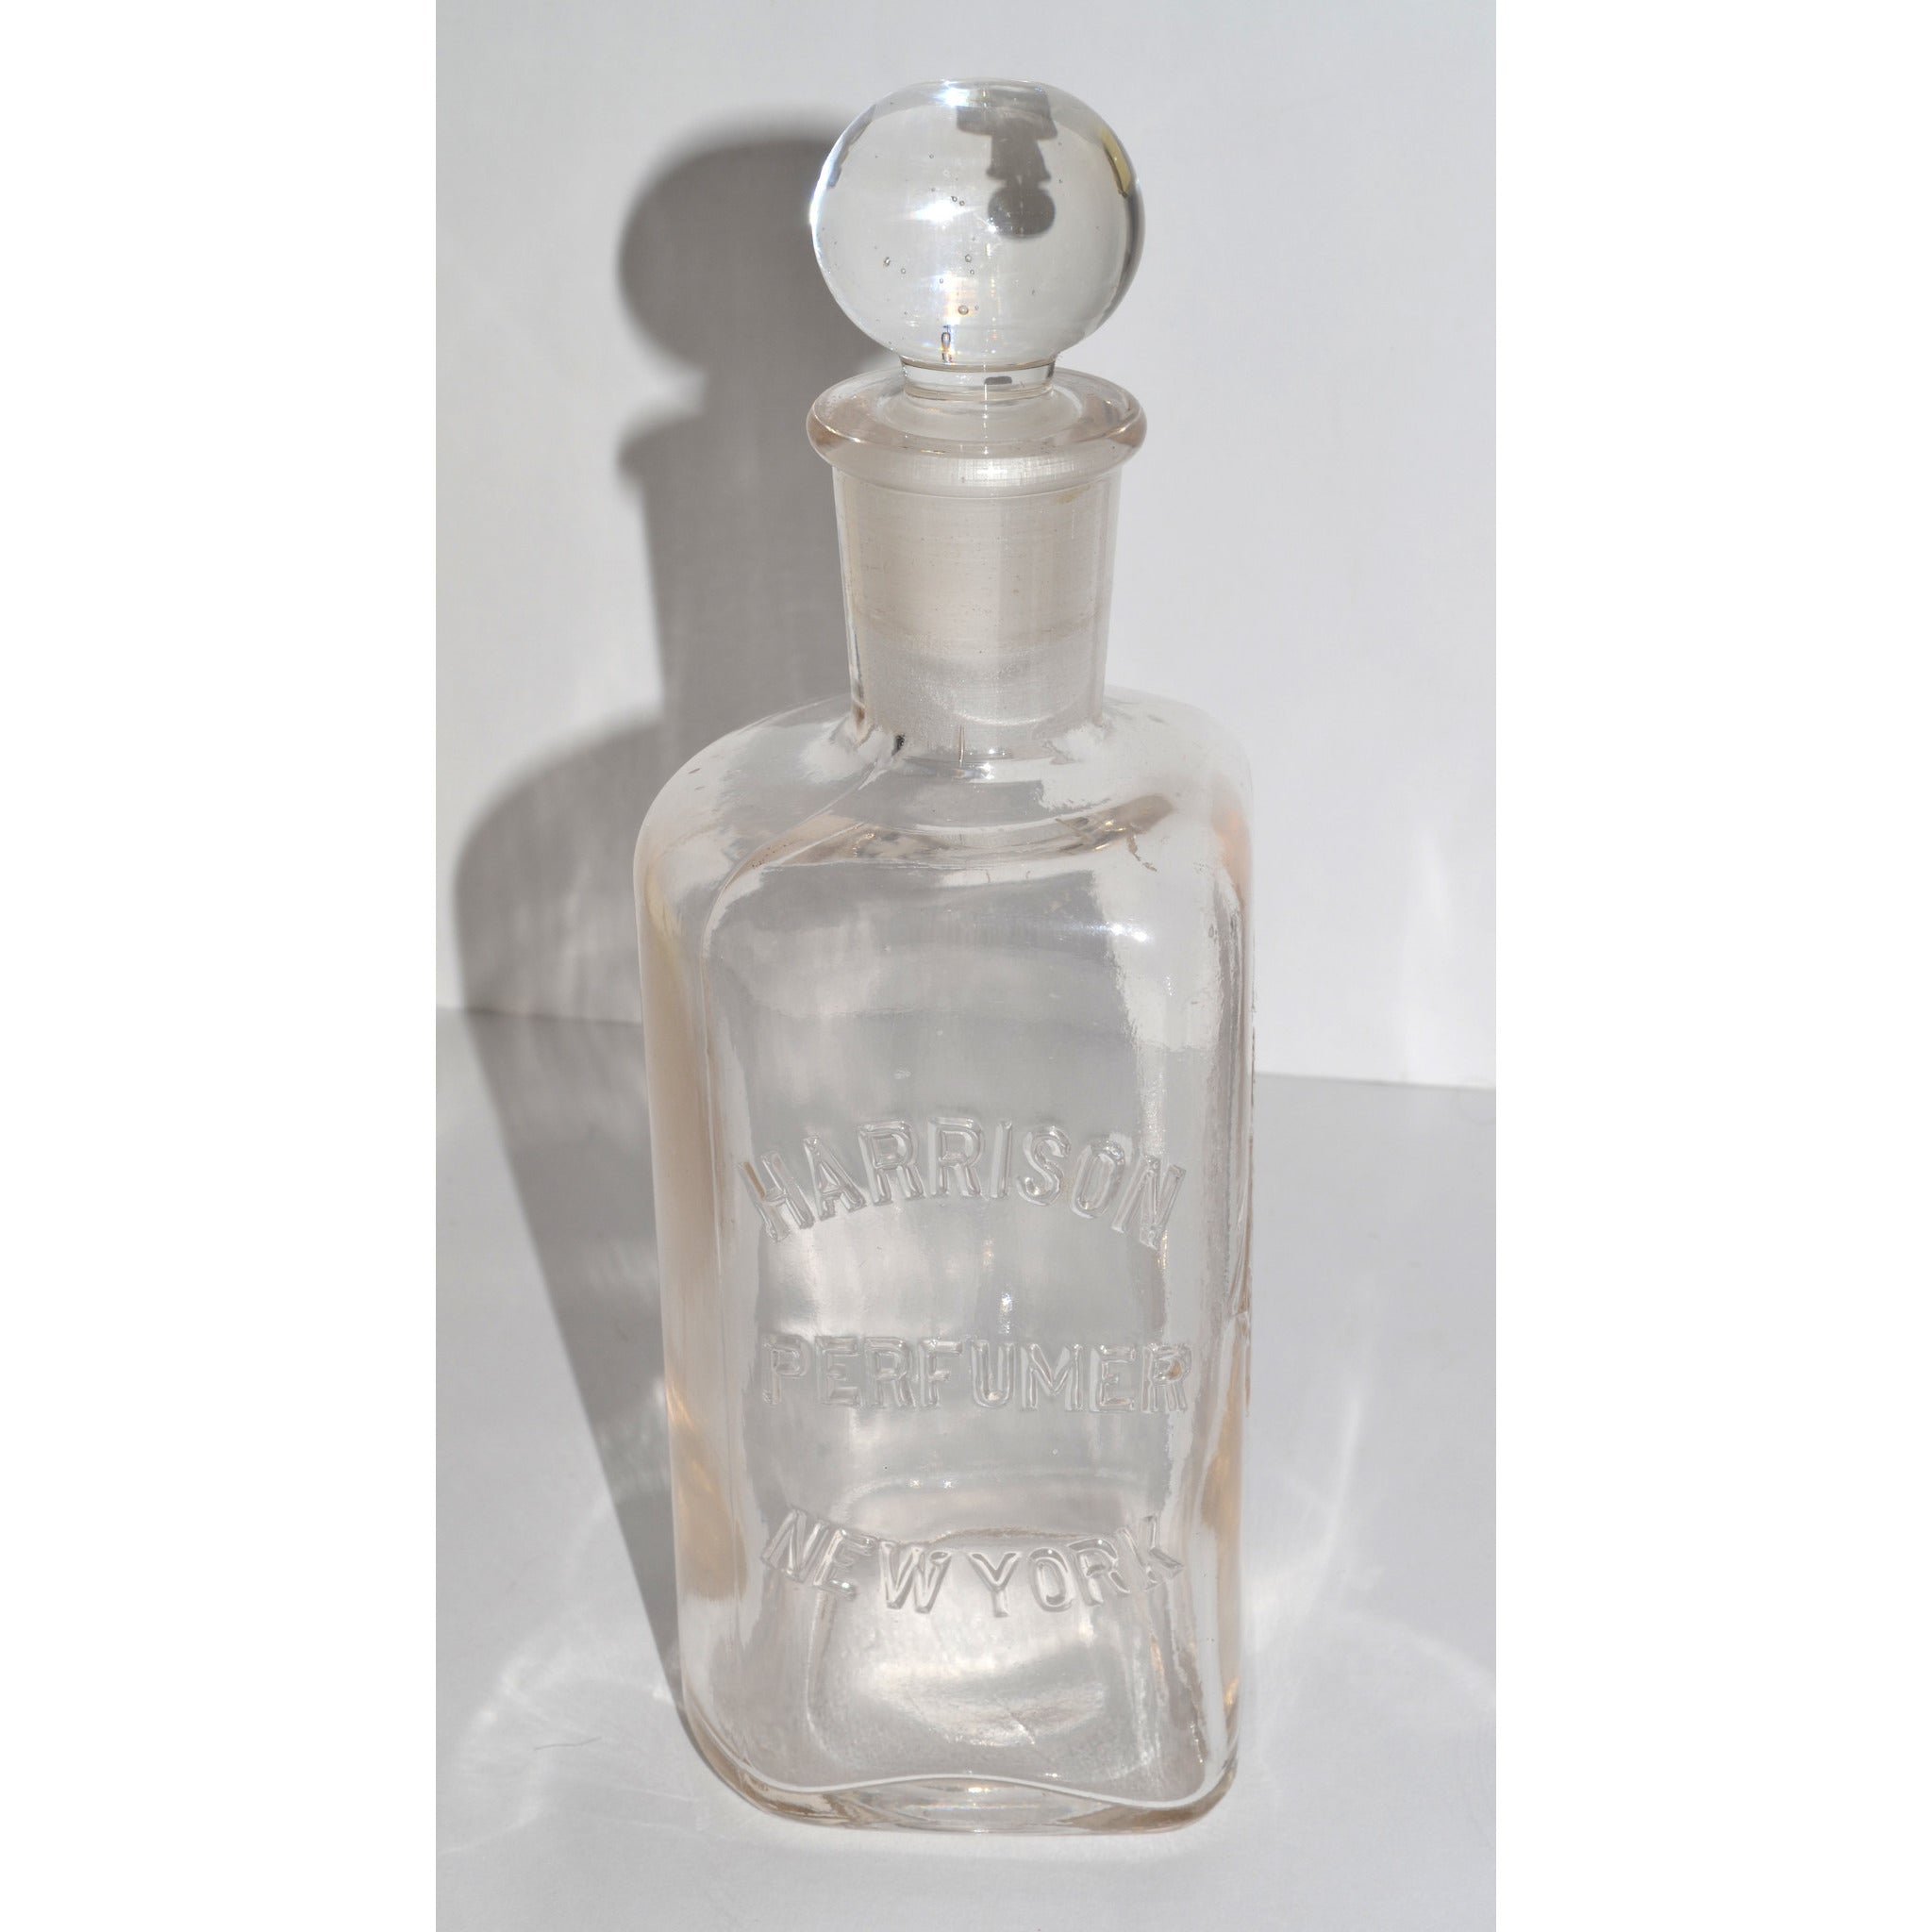 Antique Harrison Perfumer Apothecary Bottle